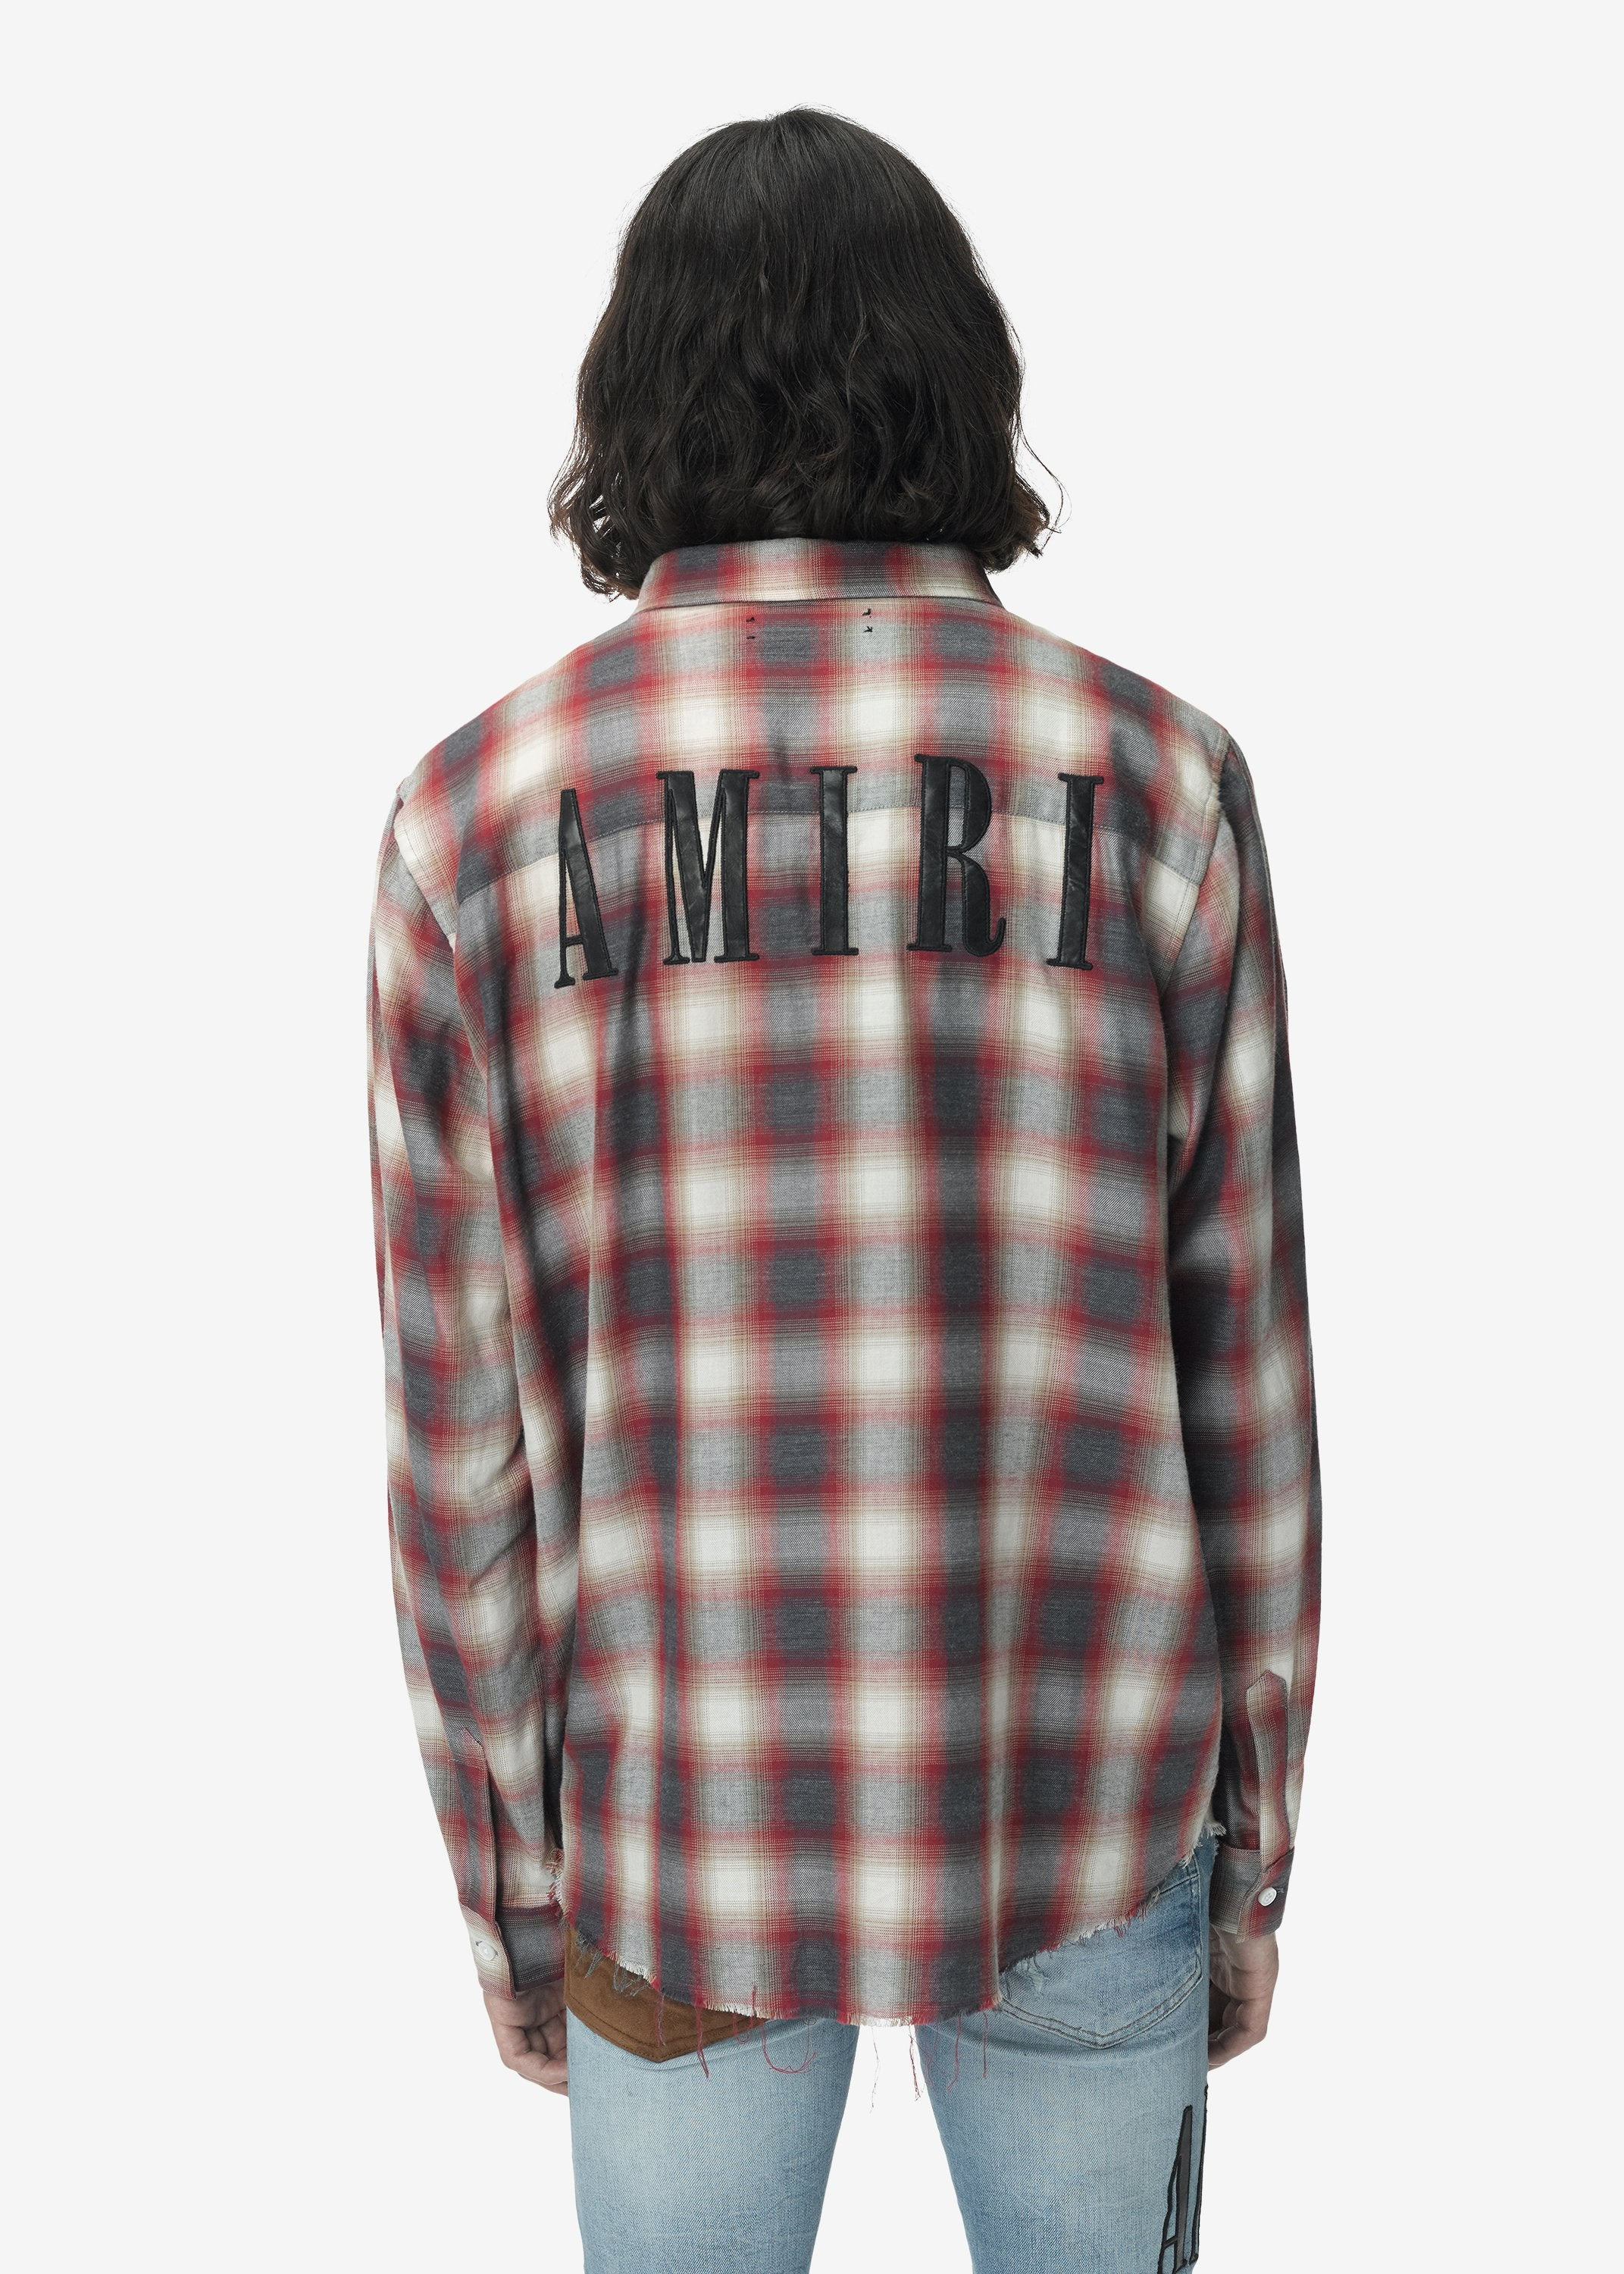 amiri-flannel-shirt-red-white-image-5